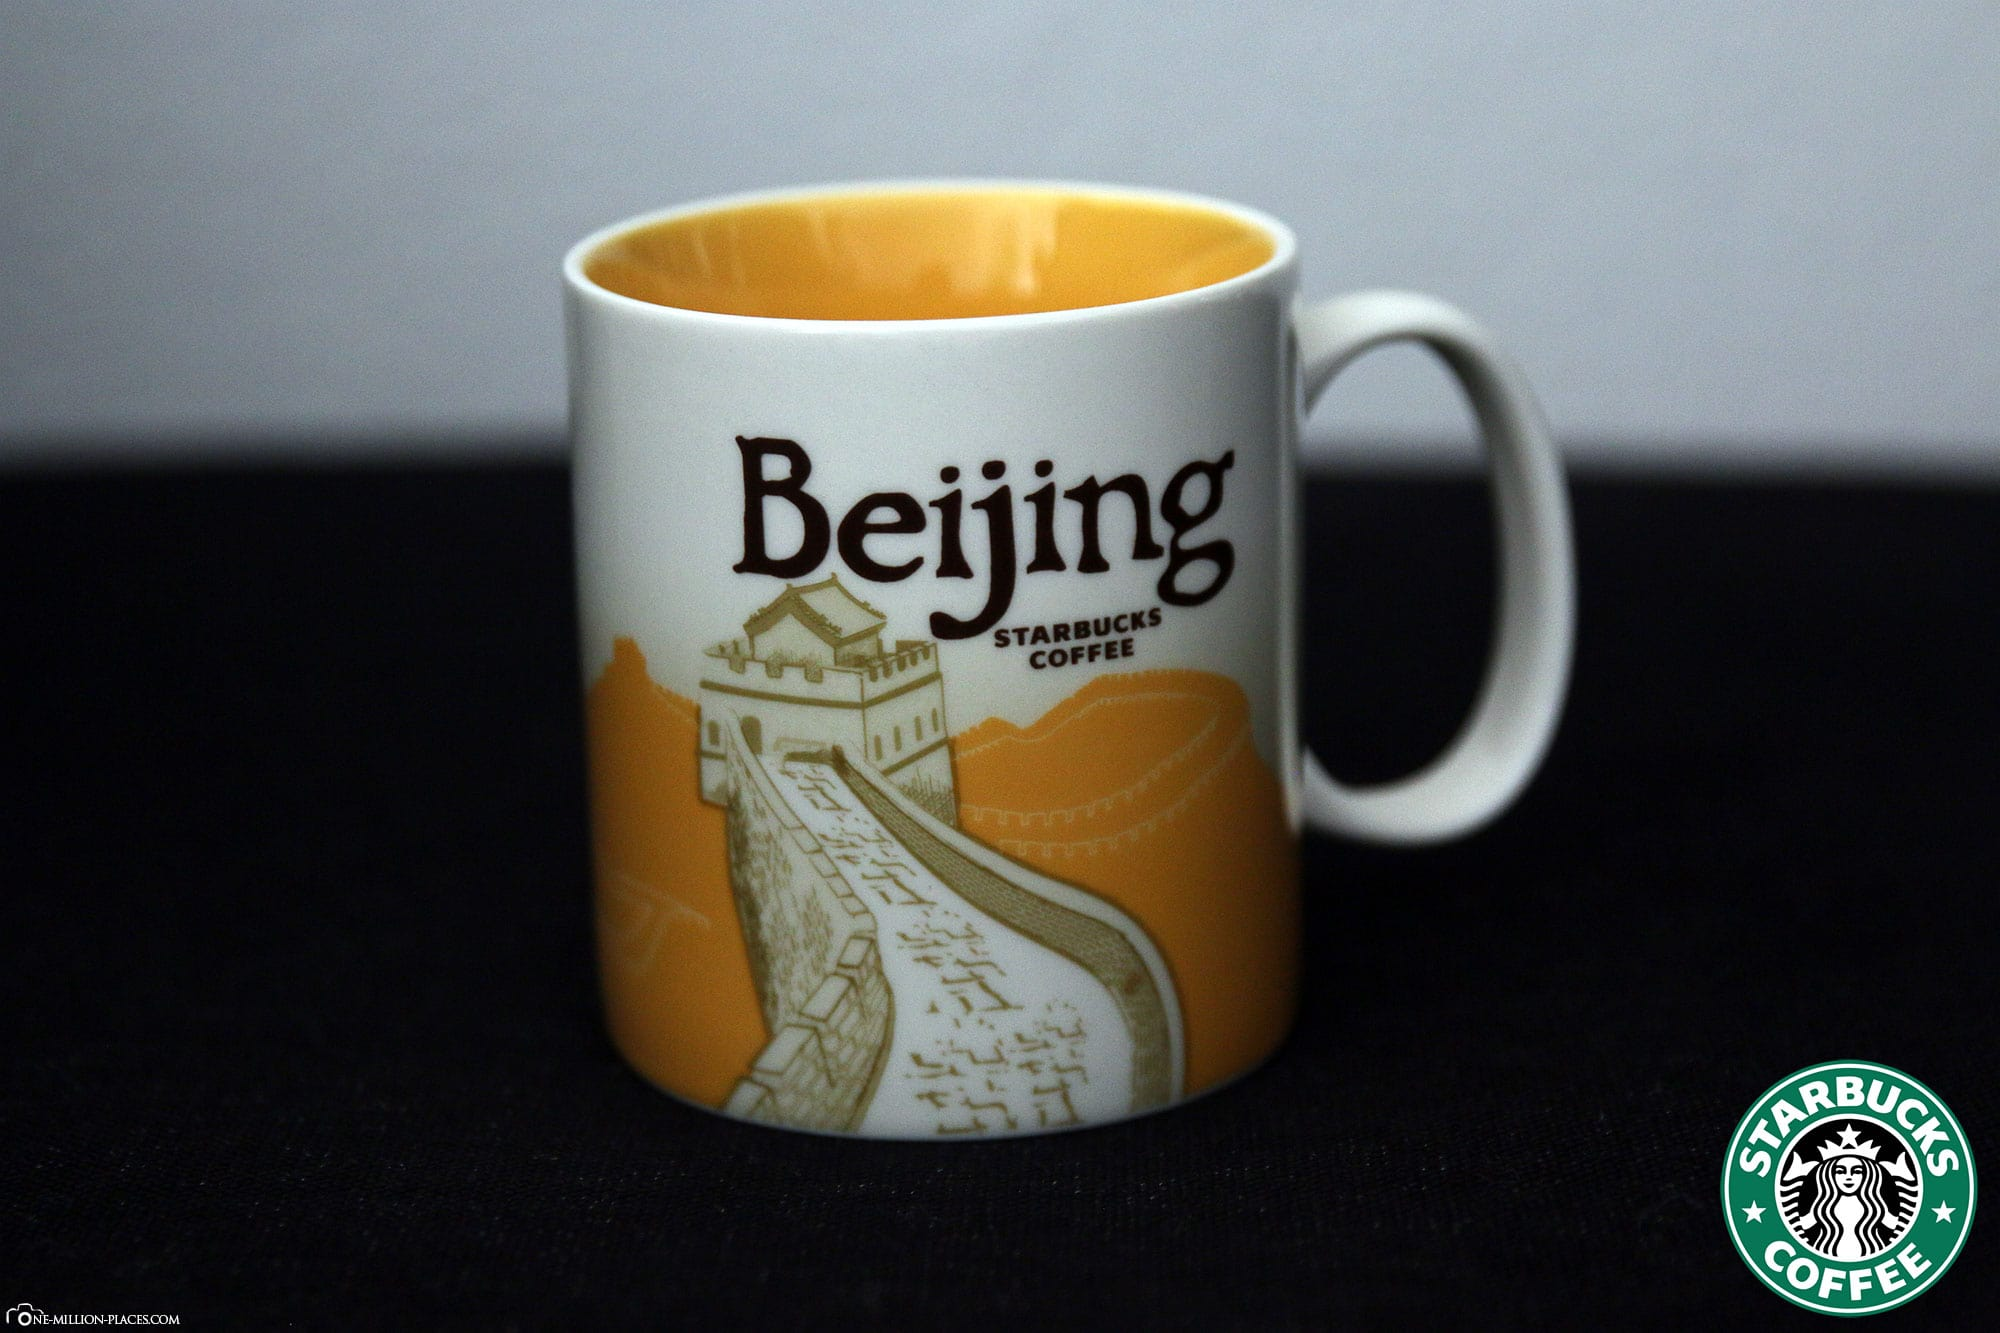 Peking, Starbucks Tasse, Global Icon Serie, City Mugs, Sammlung, China, Reisebericht